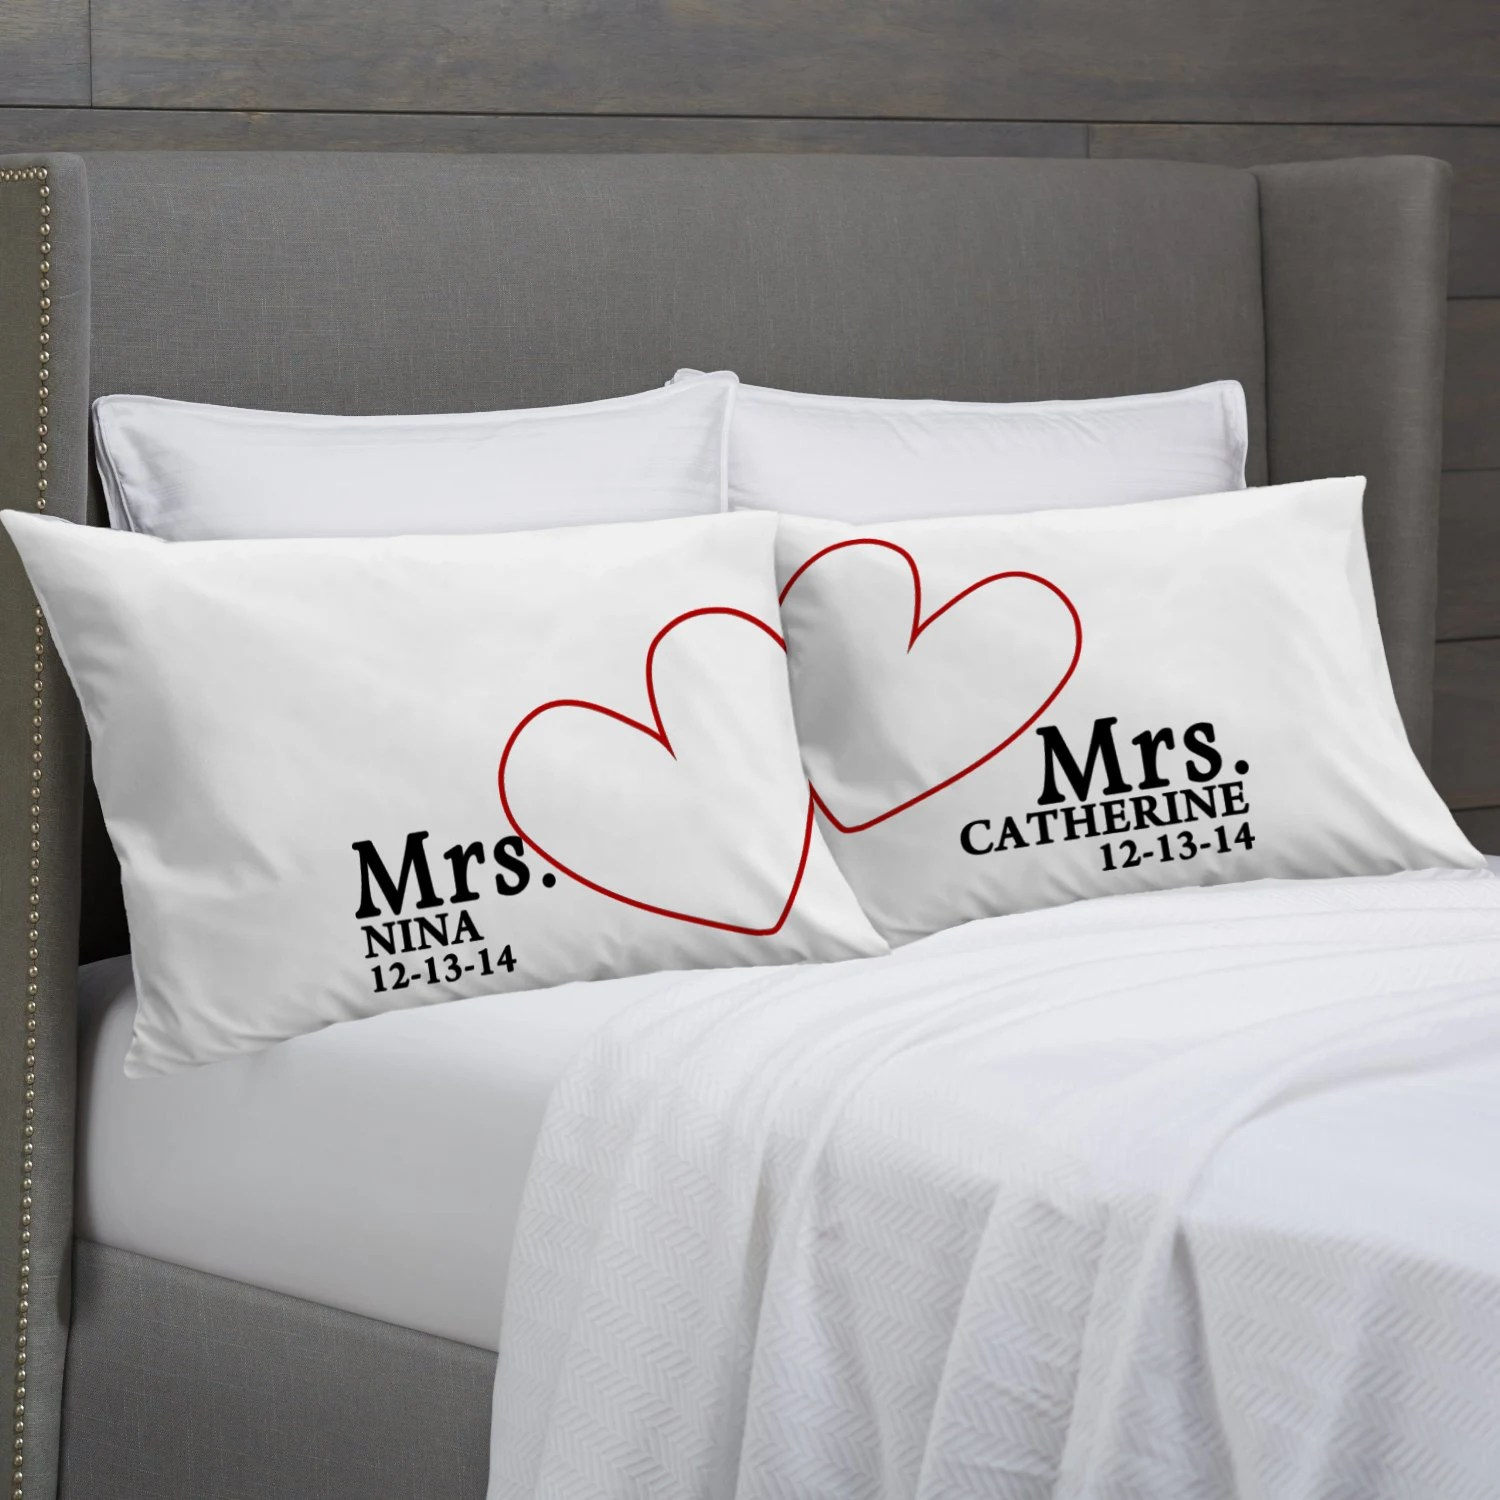 lesbian couple lesbian wedding bands MRS and MRS Personalized Pillowcases Lesbian Couple Gift Idea Wedding Civil Union Anniversary Valentines Girlfriends Pillow Cases